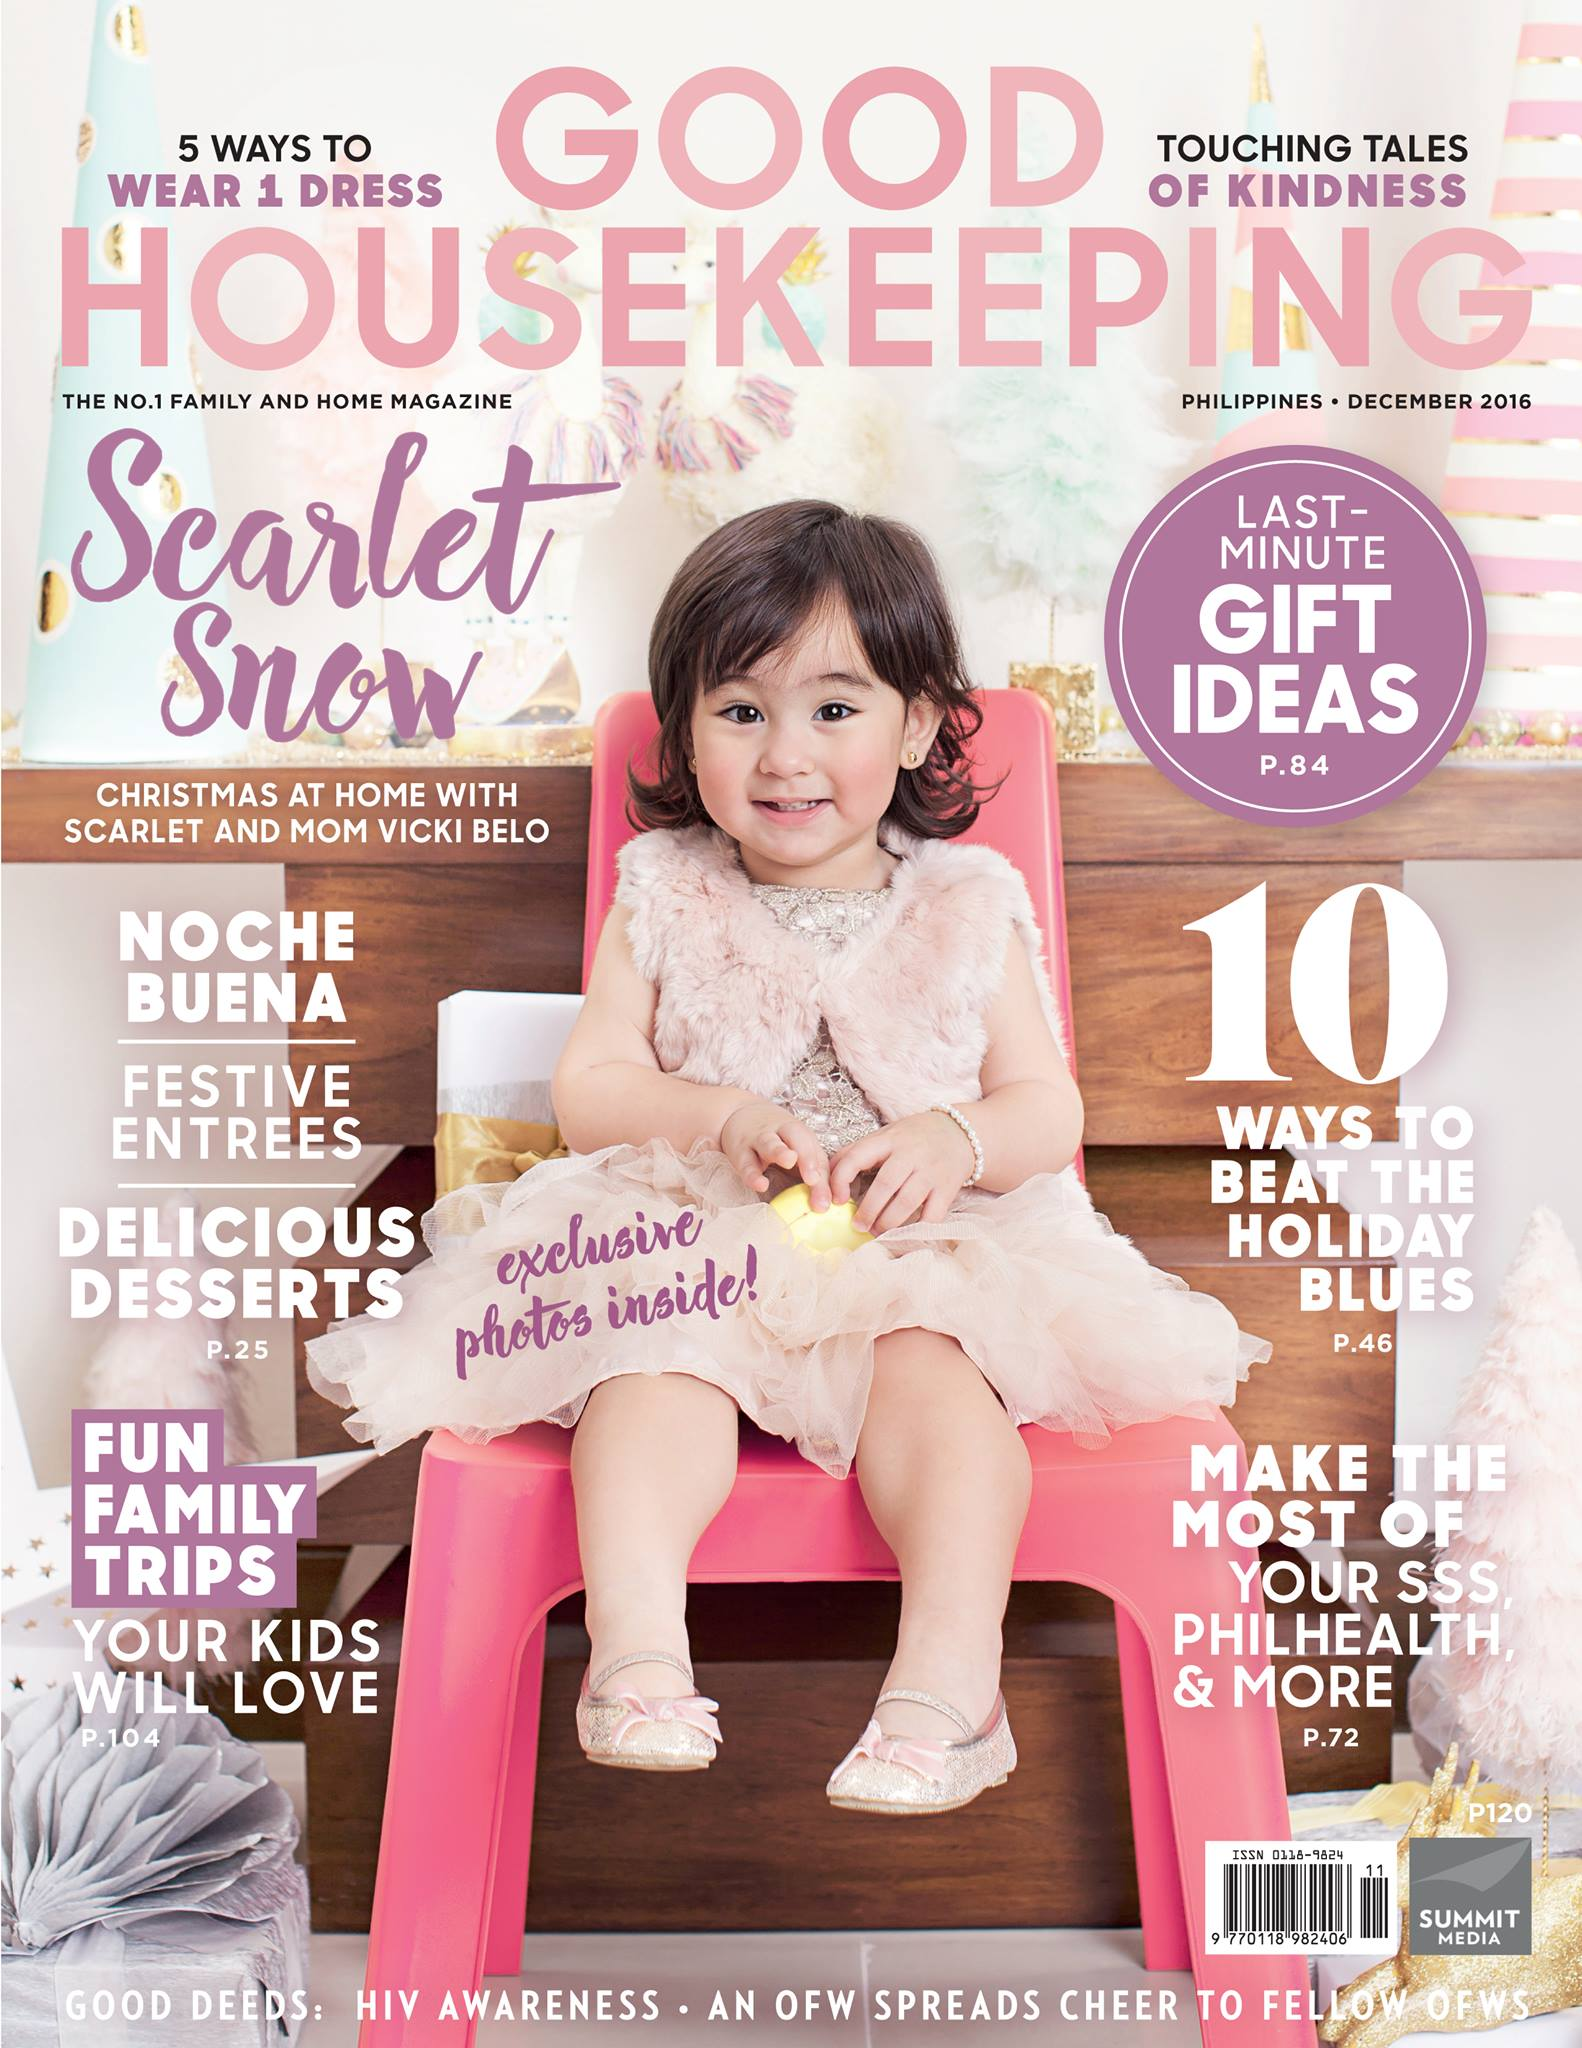 Scarlet Snow Belo on the cover of Good Housekeeping magazine's December issue. (Photo: Good Housekeeping Philippines/Facebook)